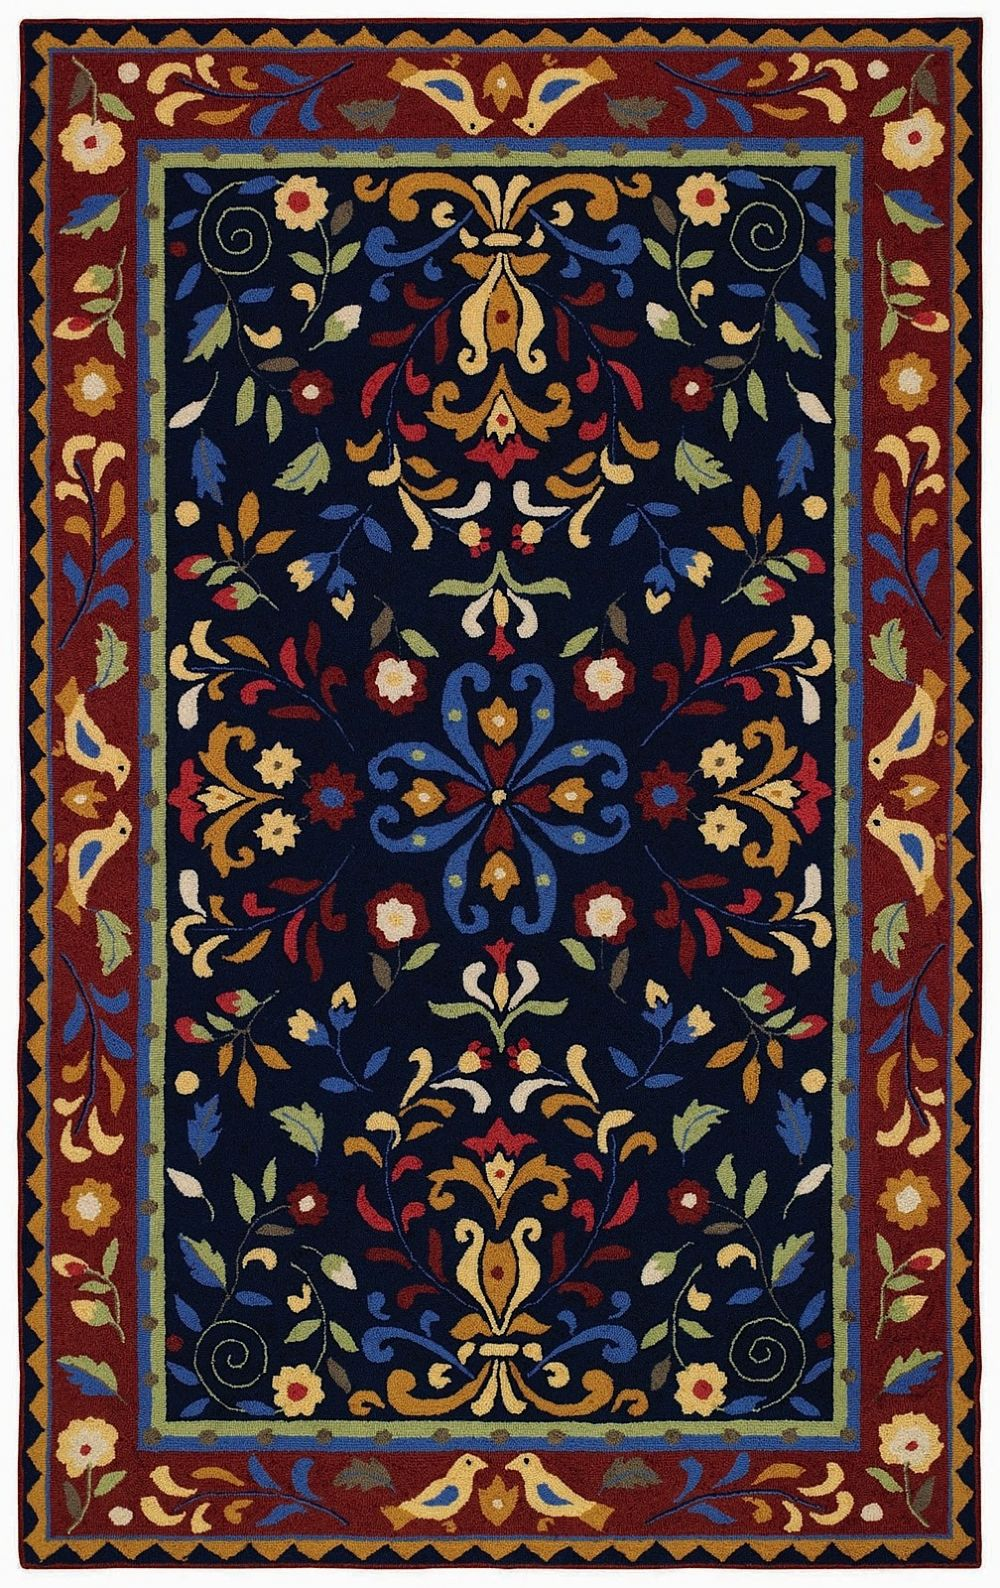 capel amish country contemporary area rug collection